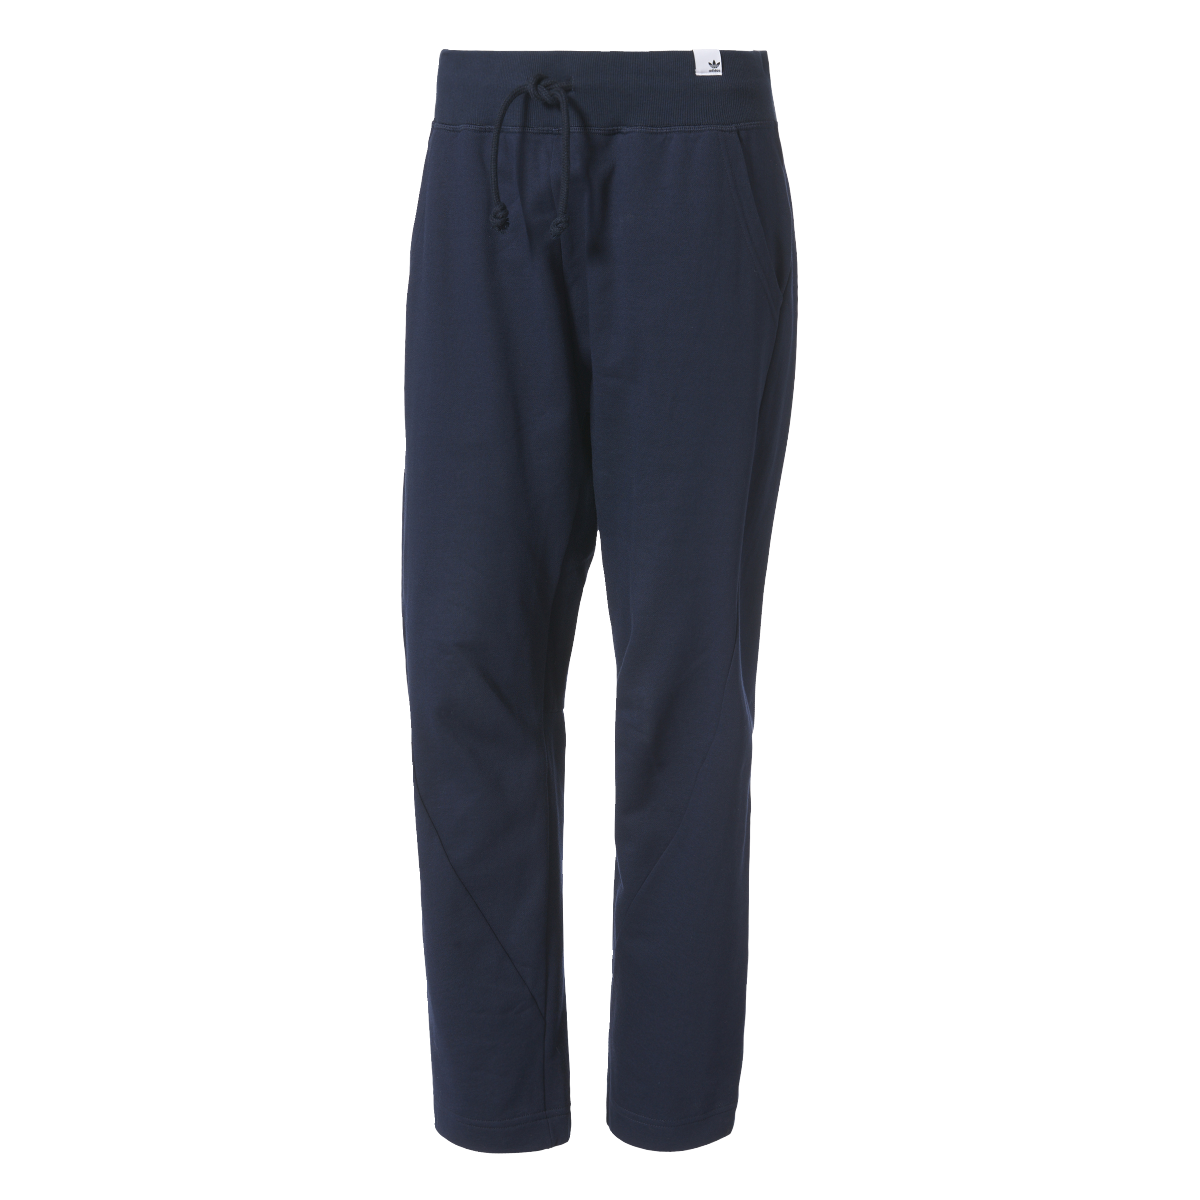 adidas originals xbyo pant damen hose blau bk2288 sport klingenmaier. Black Bedroom Furniture Sets. Home Design Ideas